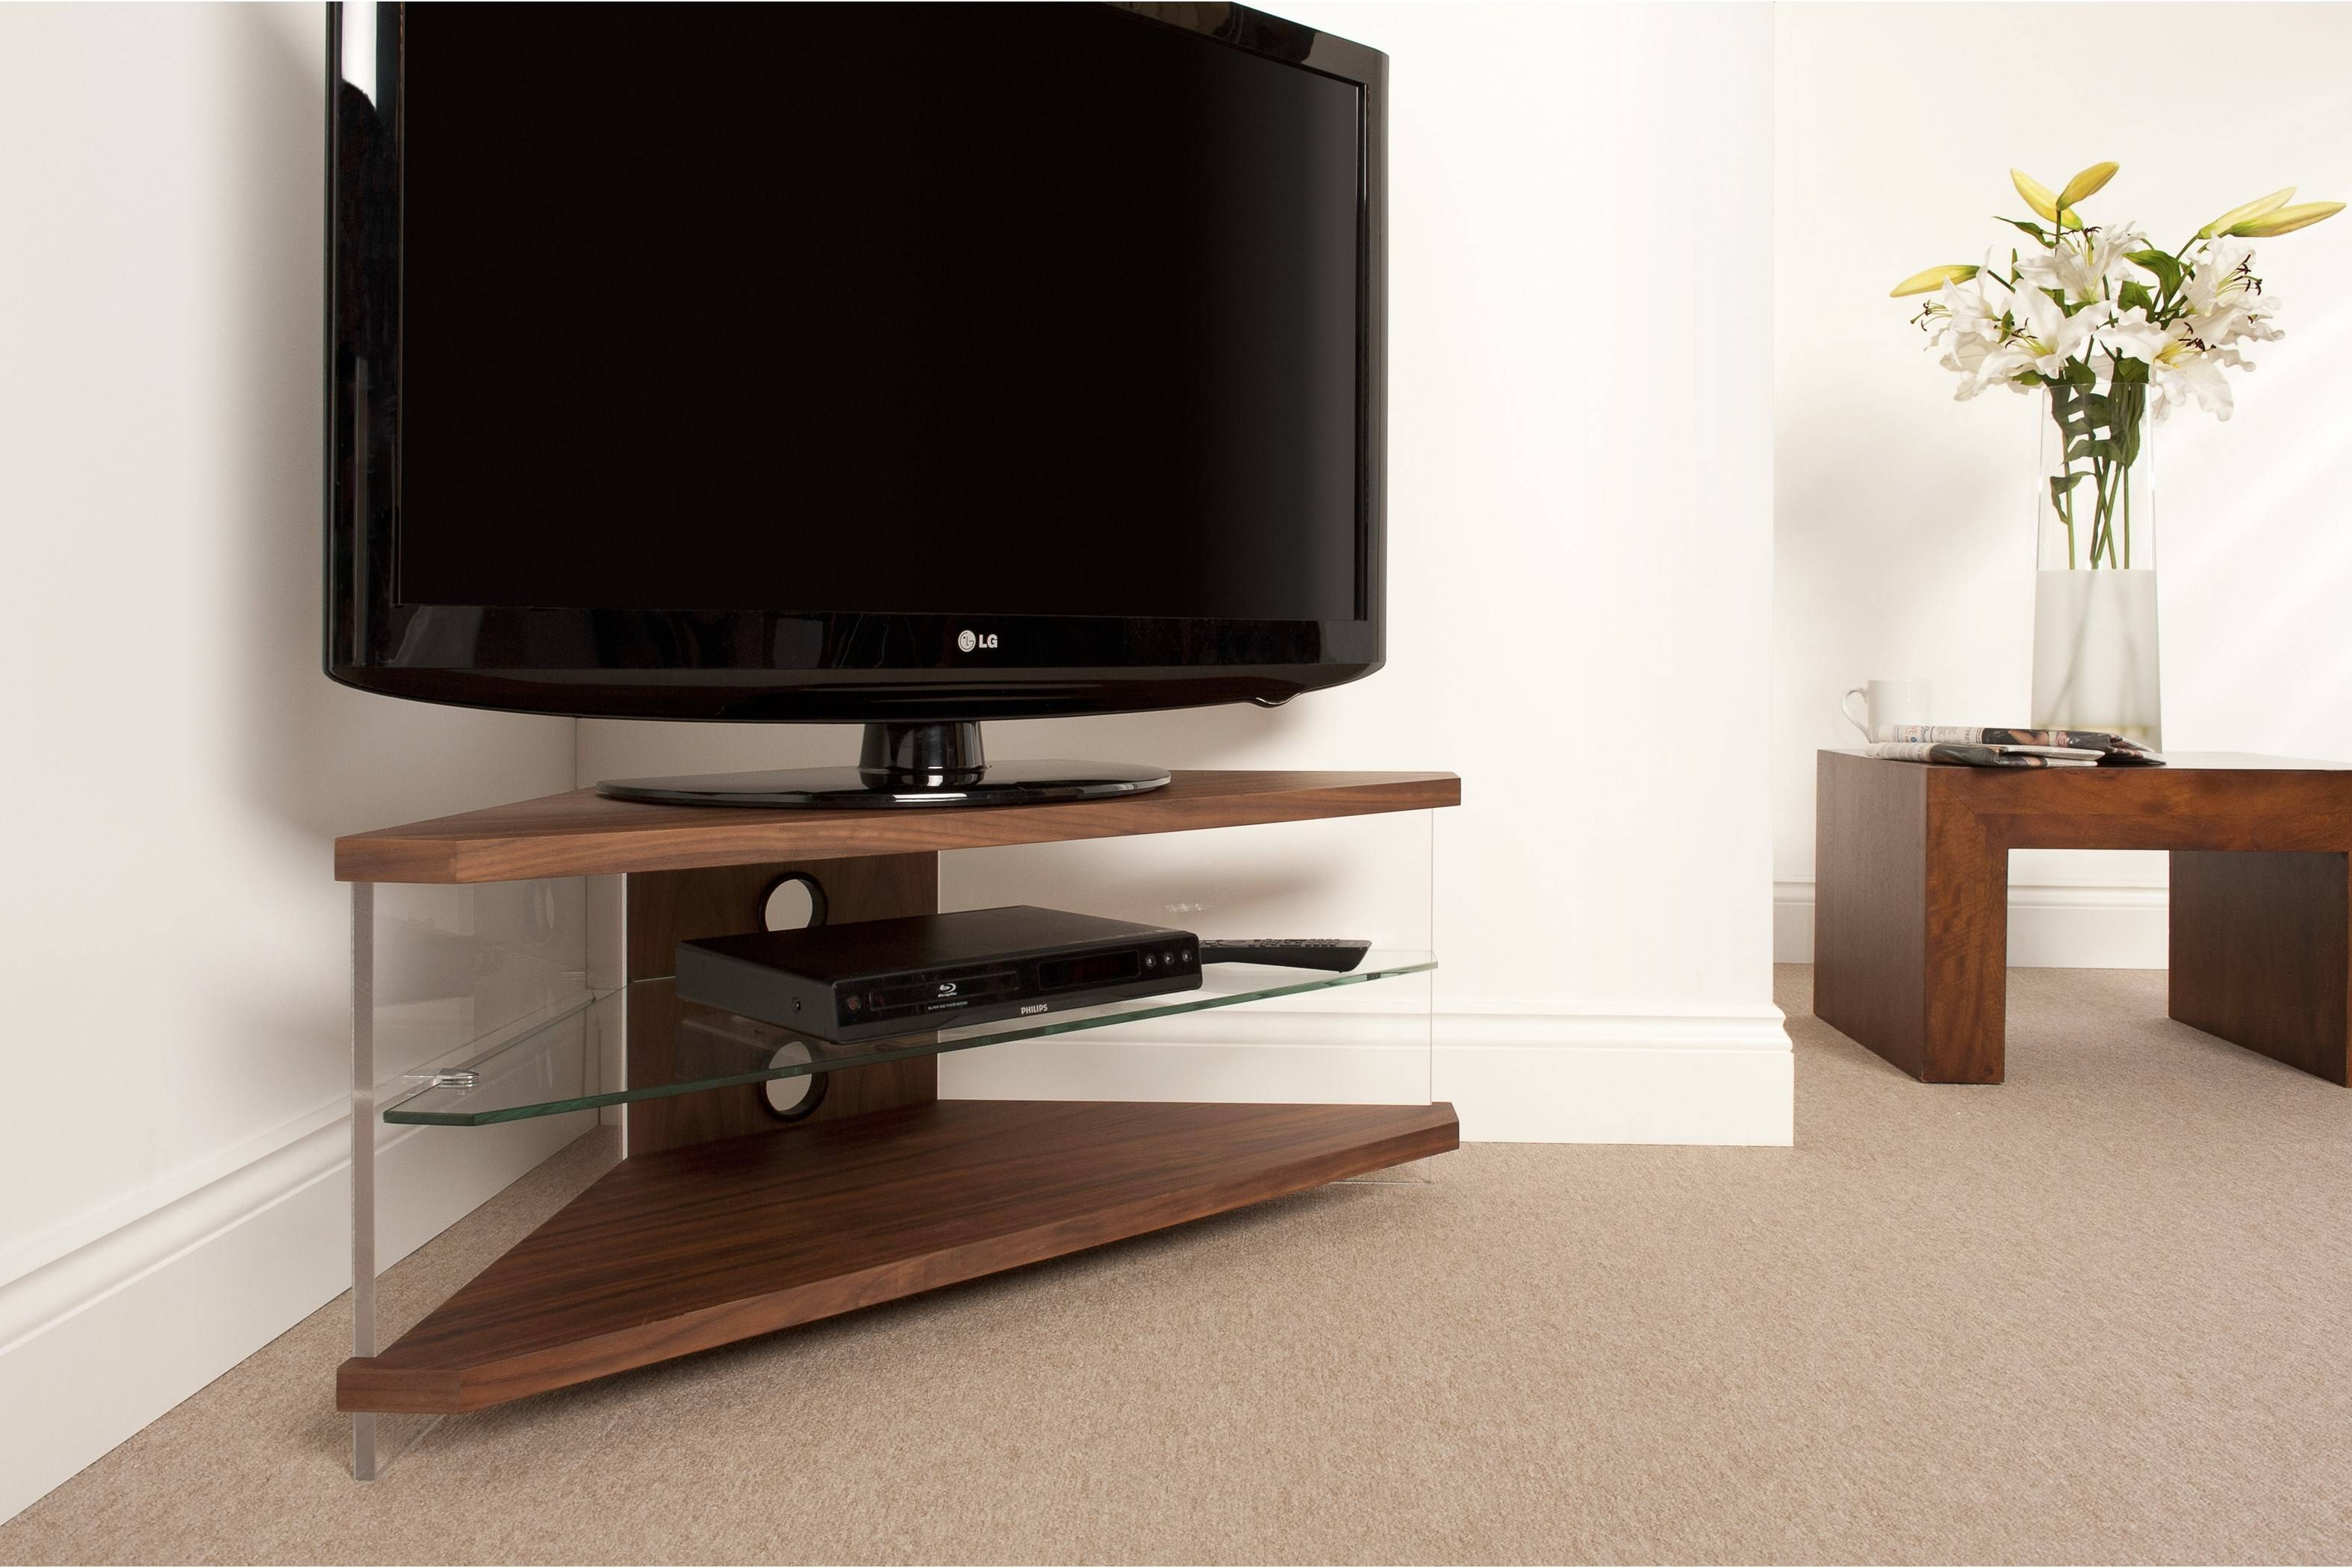 Furniture : Minimalist Room With Square White Coffee Table Near With Regard To Square Tv Stands (View 9 of 15)